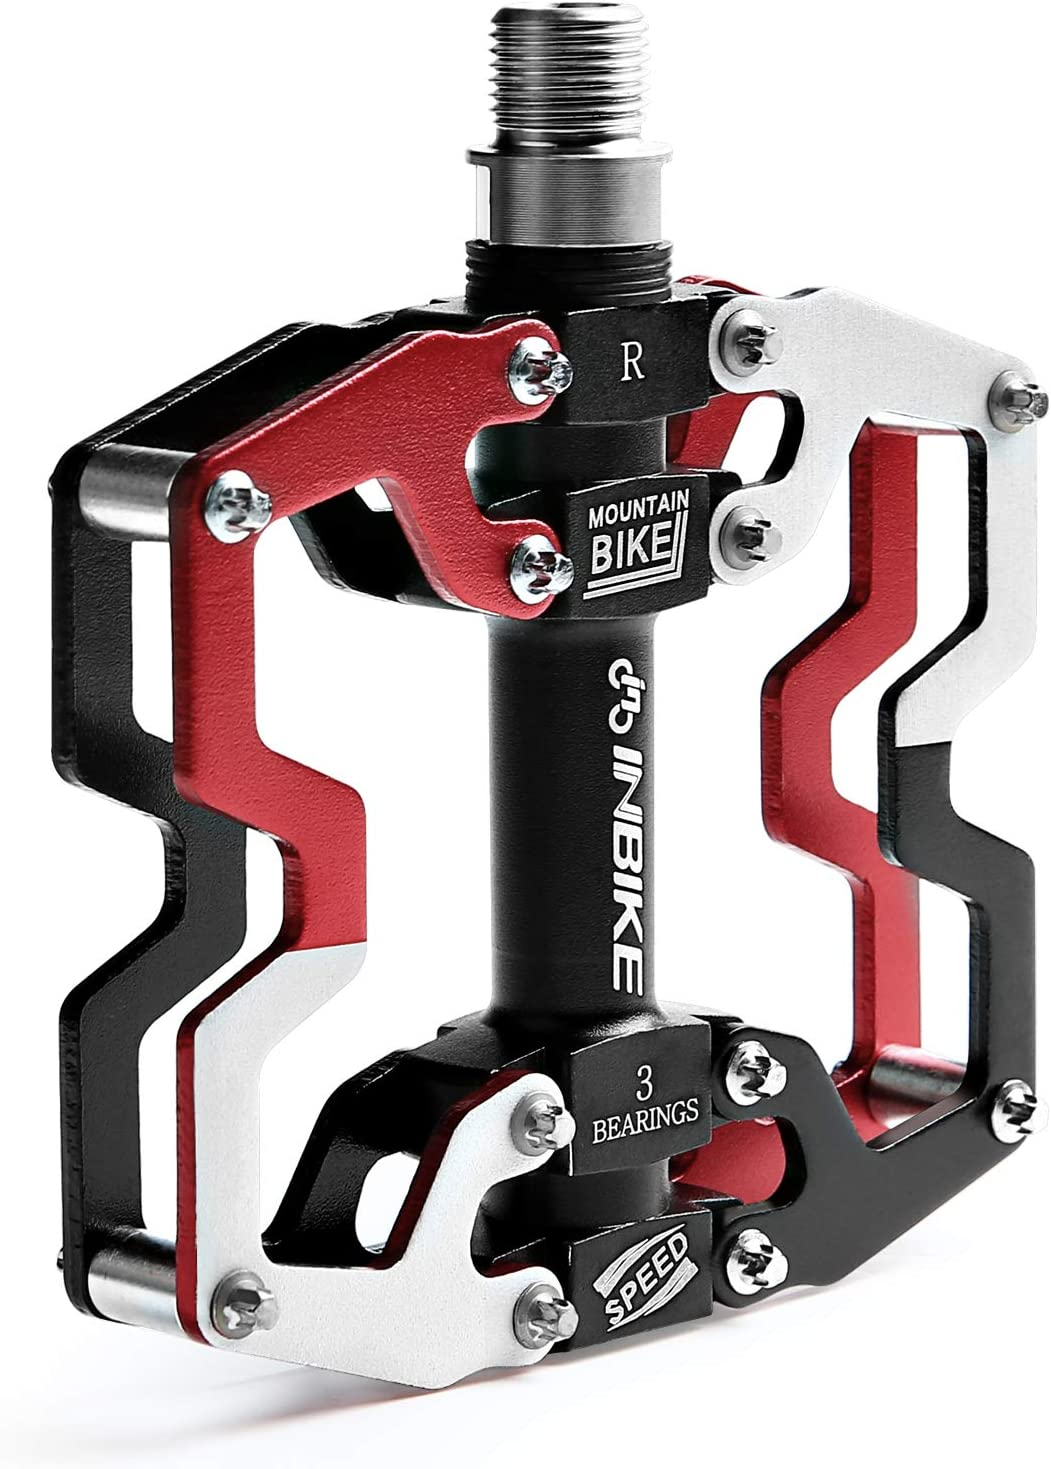 INBIKE Bike Pedals Mountain Road In-Mold CNC Machined Aluminum Alloy MTB Cycling Cycle Platform Pedal